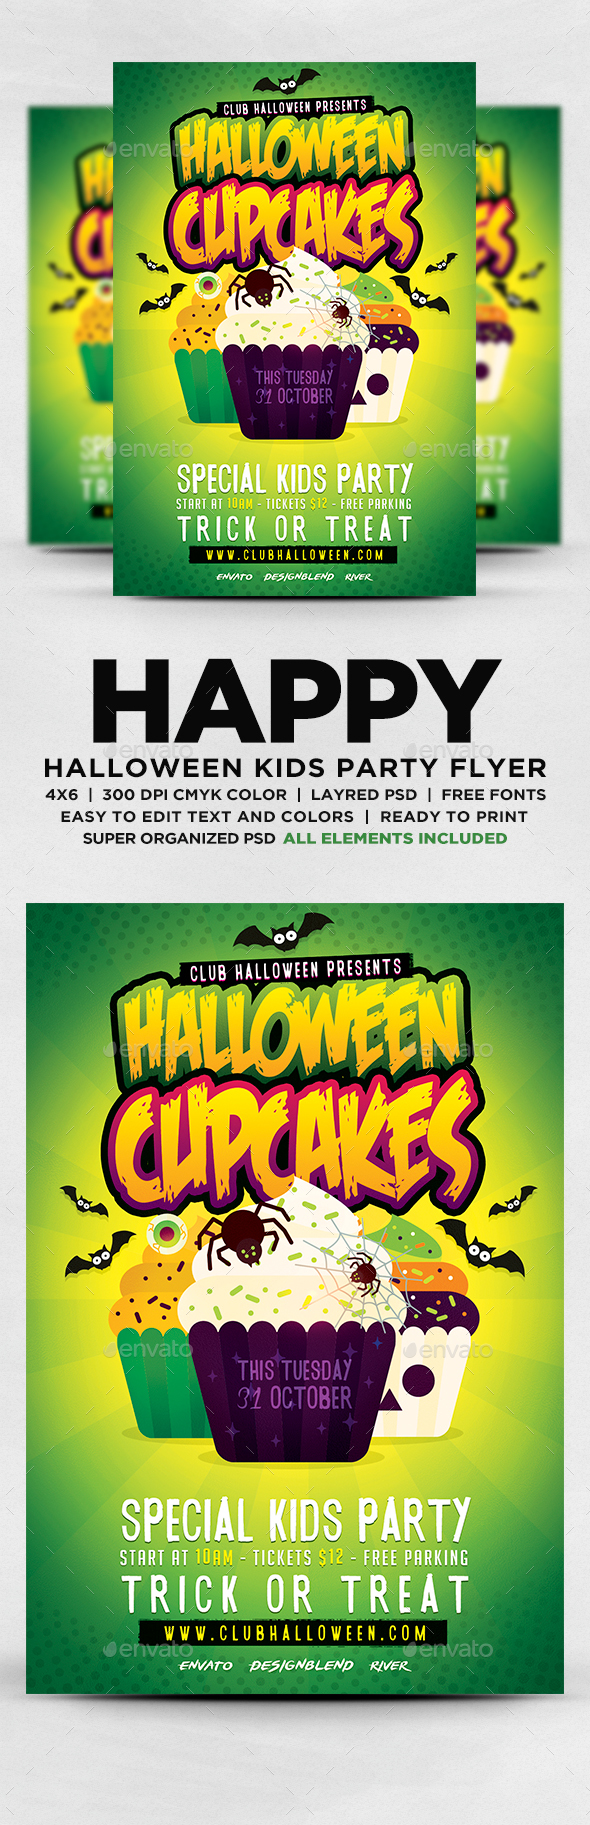 Halloween Cupcakes Kids Party Flyer